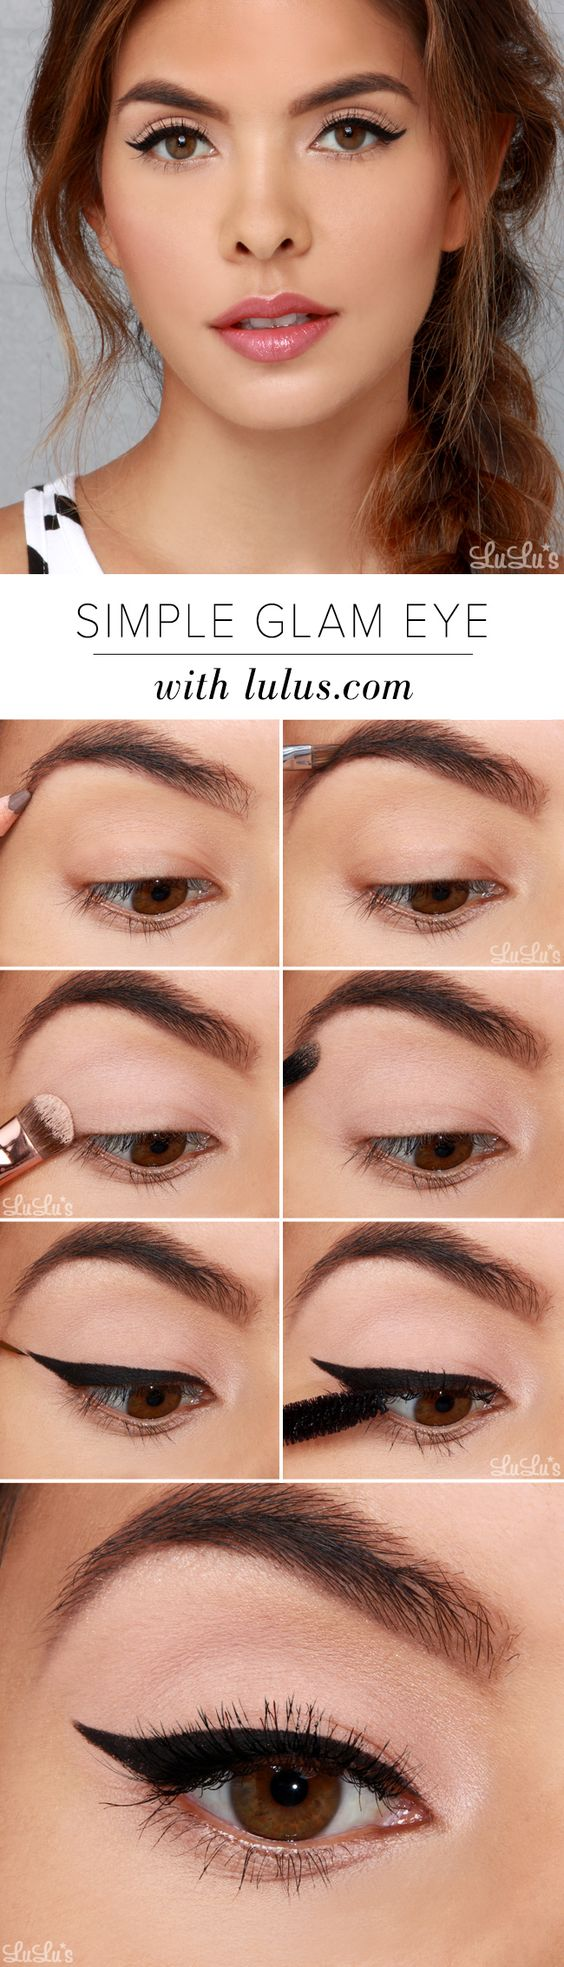 Easy Bridal Makeup Steps : 15 Easy Step by Step Bridal Eye Makeup Tutorials - Pretty ...